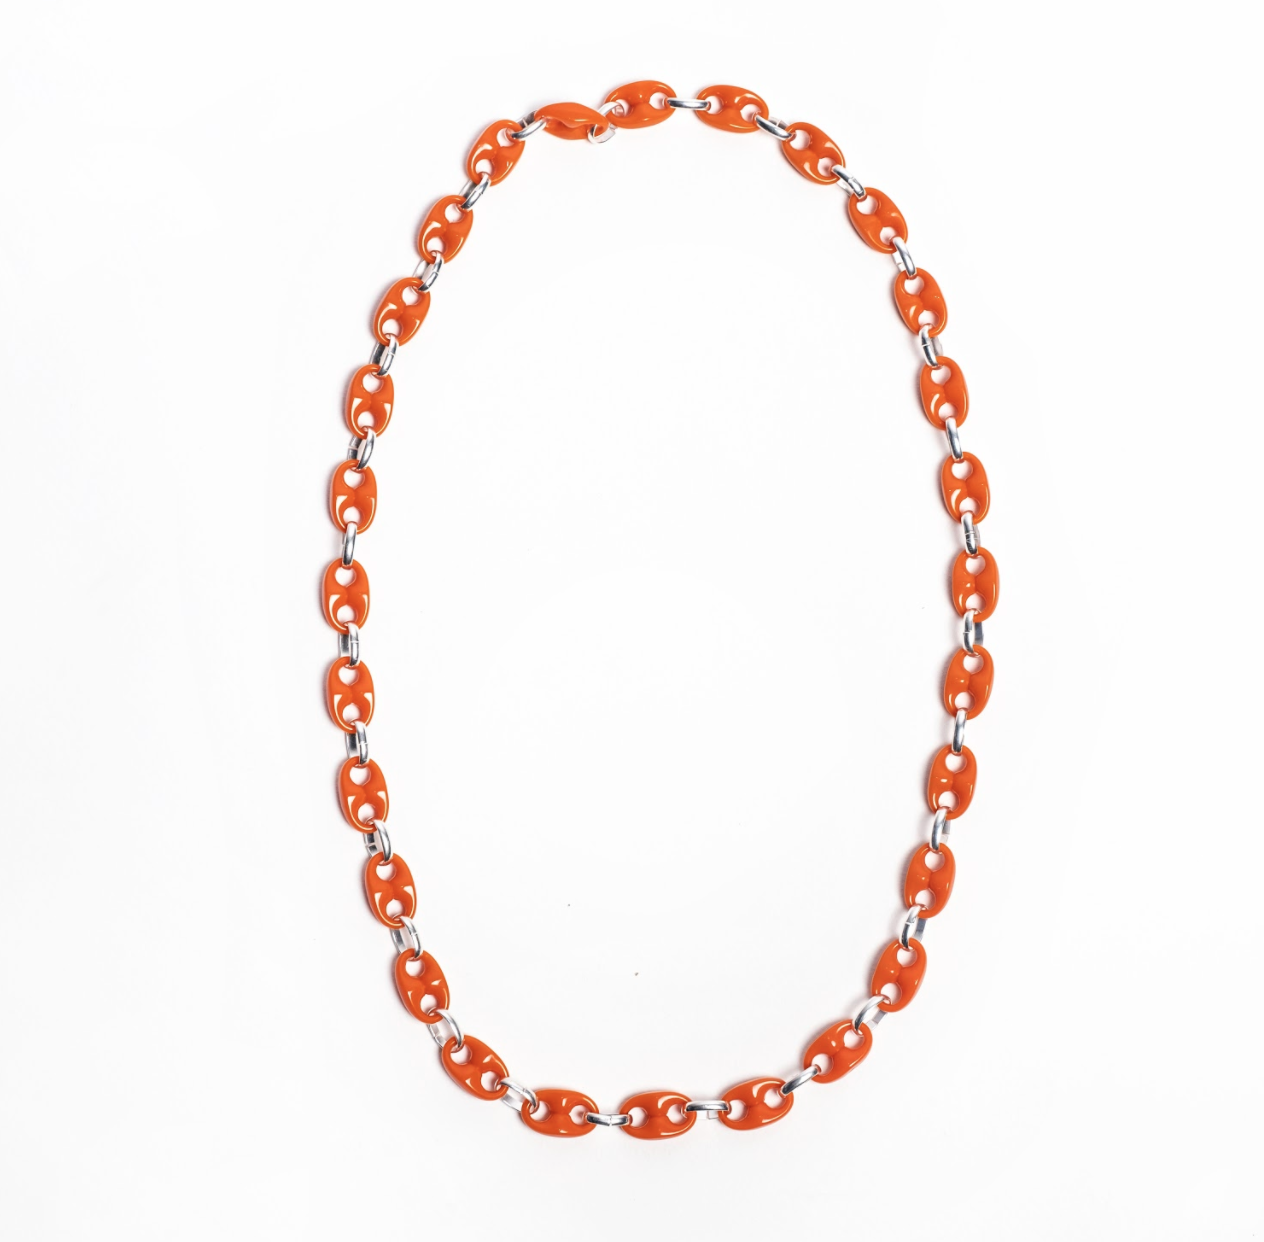 Txine Orange Necklace